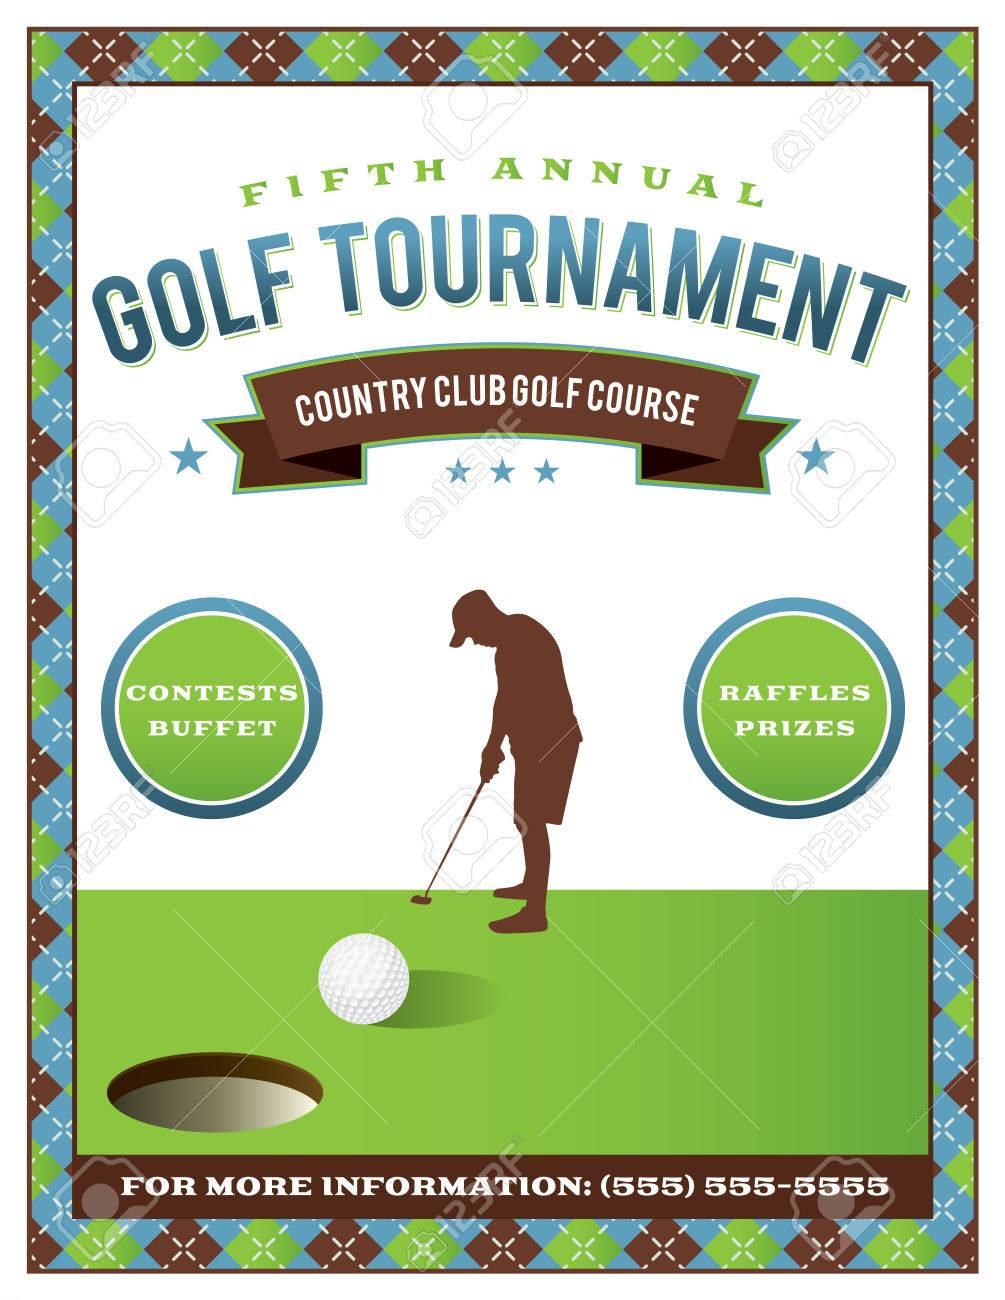 A template for a golf tournament scramble invitation flyer. Vector EPS 10 available. - 56861248